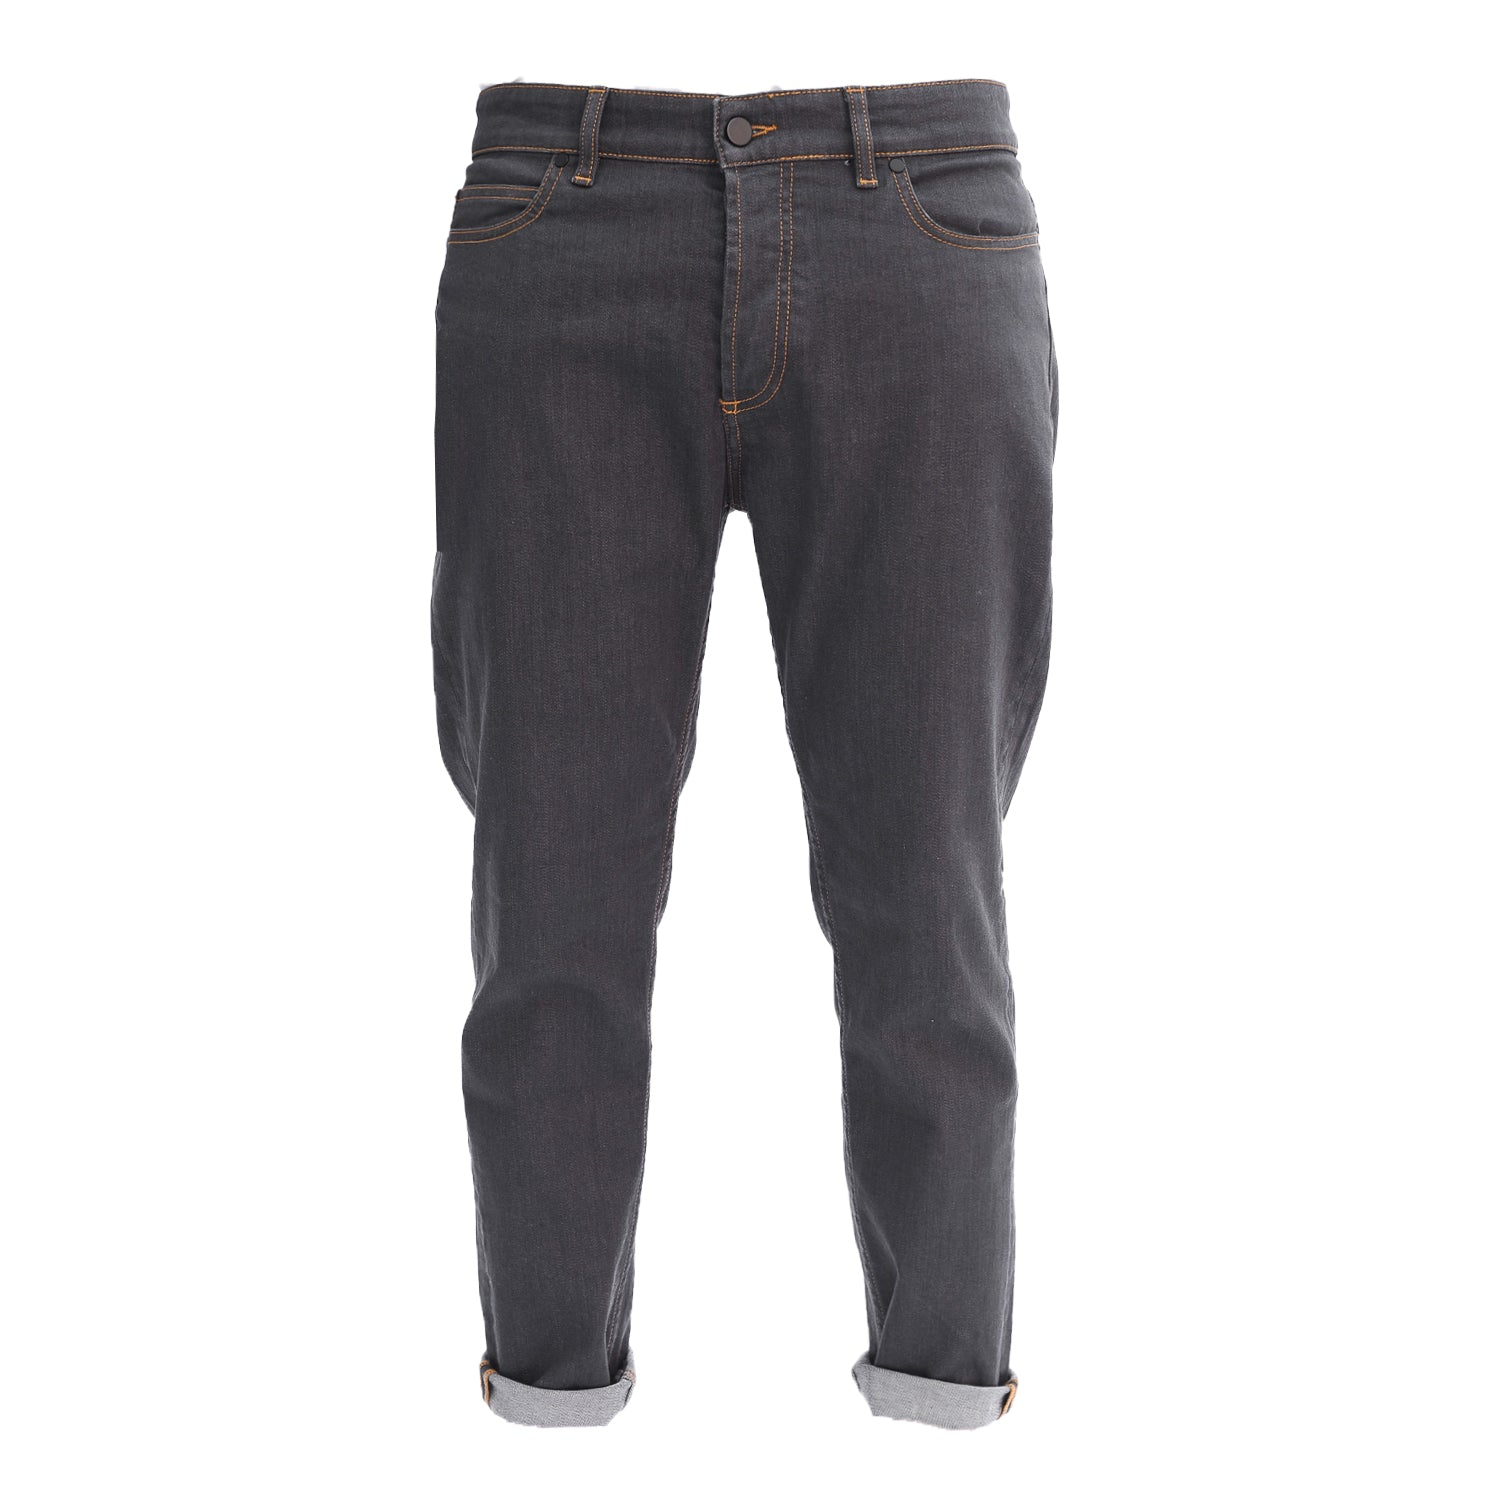 PANTS 5 POCKETS ZERI GREY